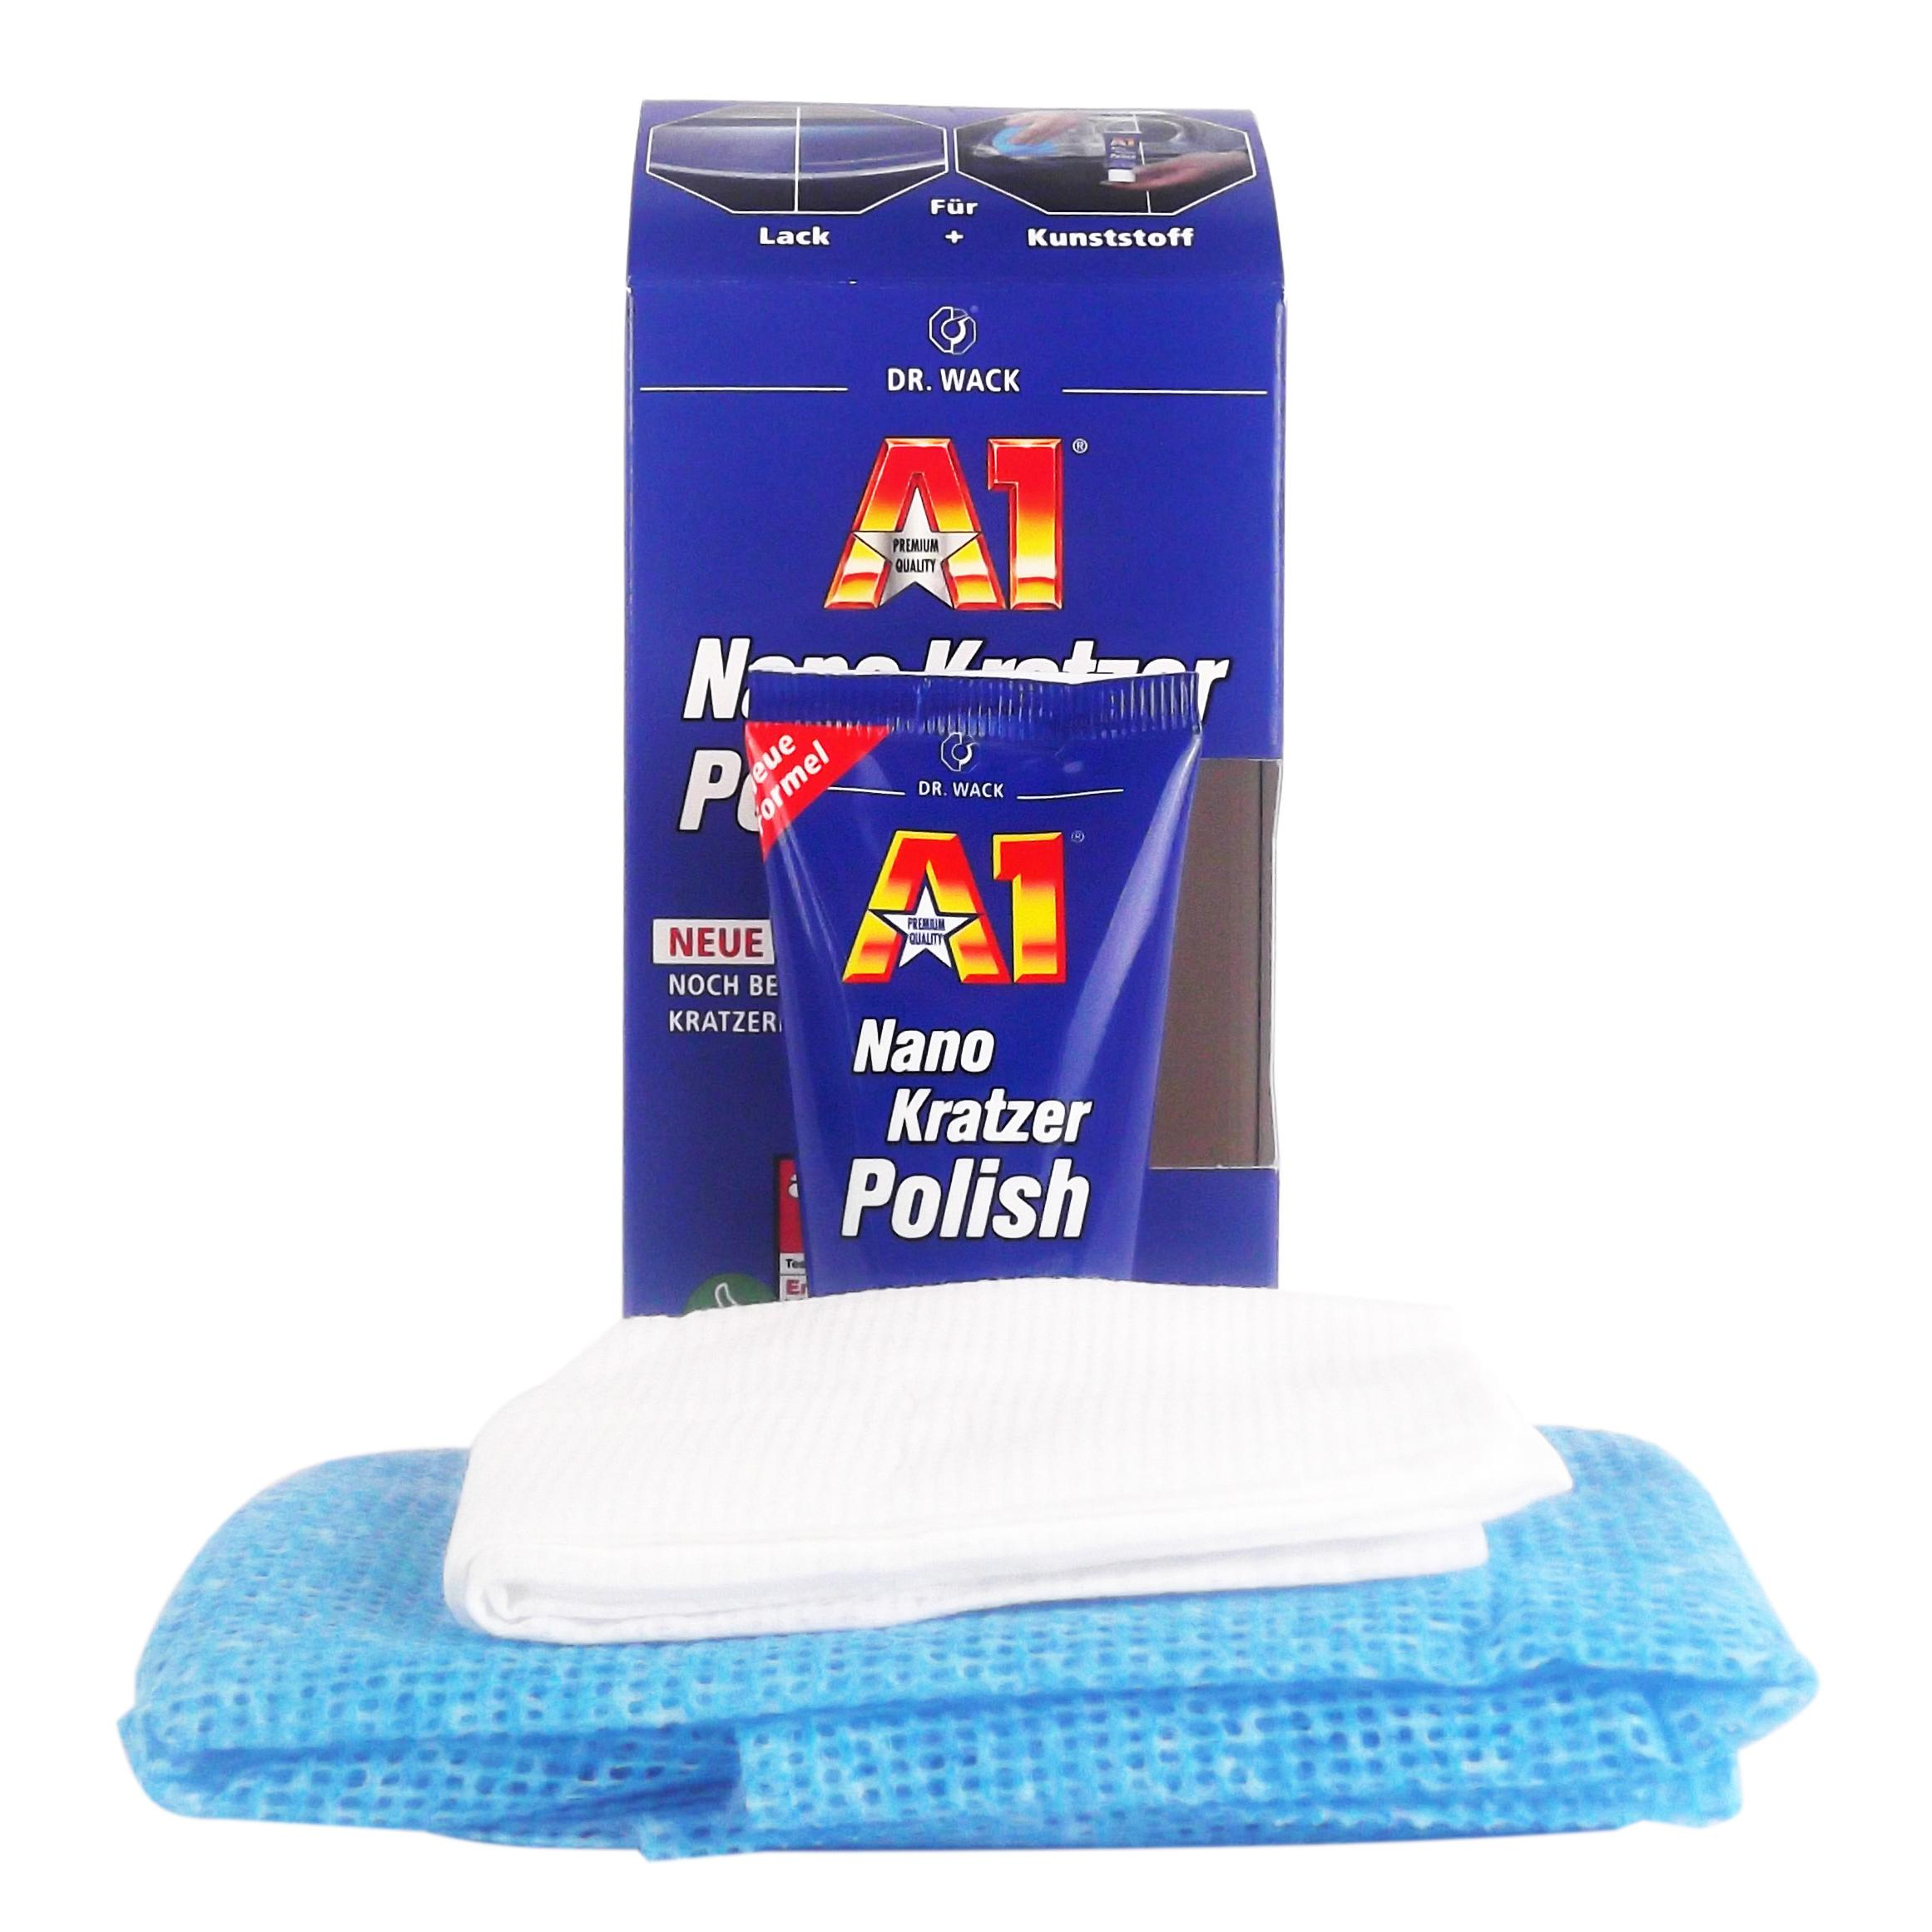 dr wack a1 nano kratzer polish politur kratzer entferner lackpolitur 50 ml ebay. Black Bedroom Furniture Sets. Home Design Ideas